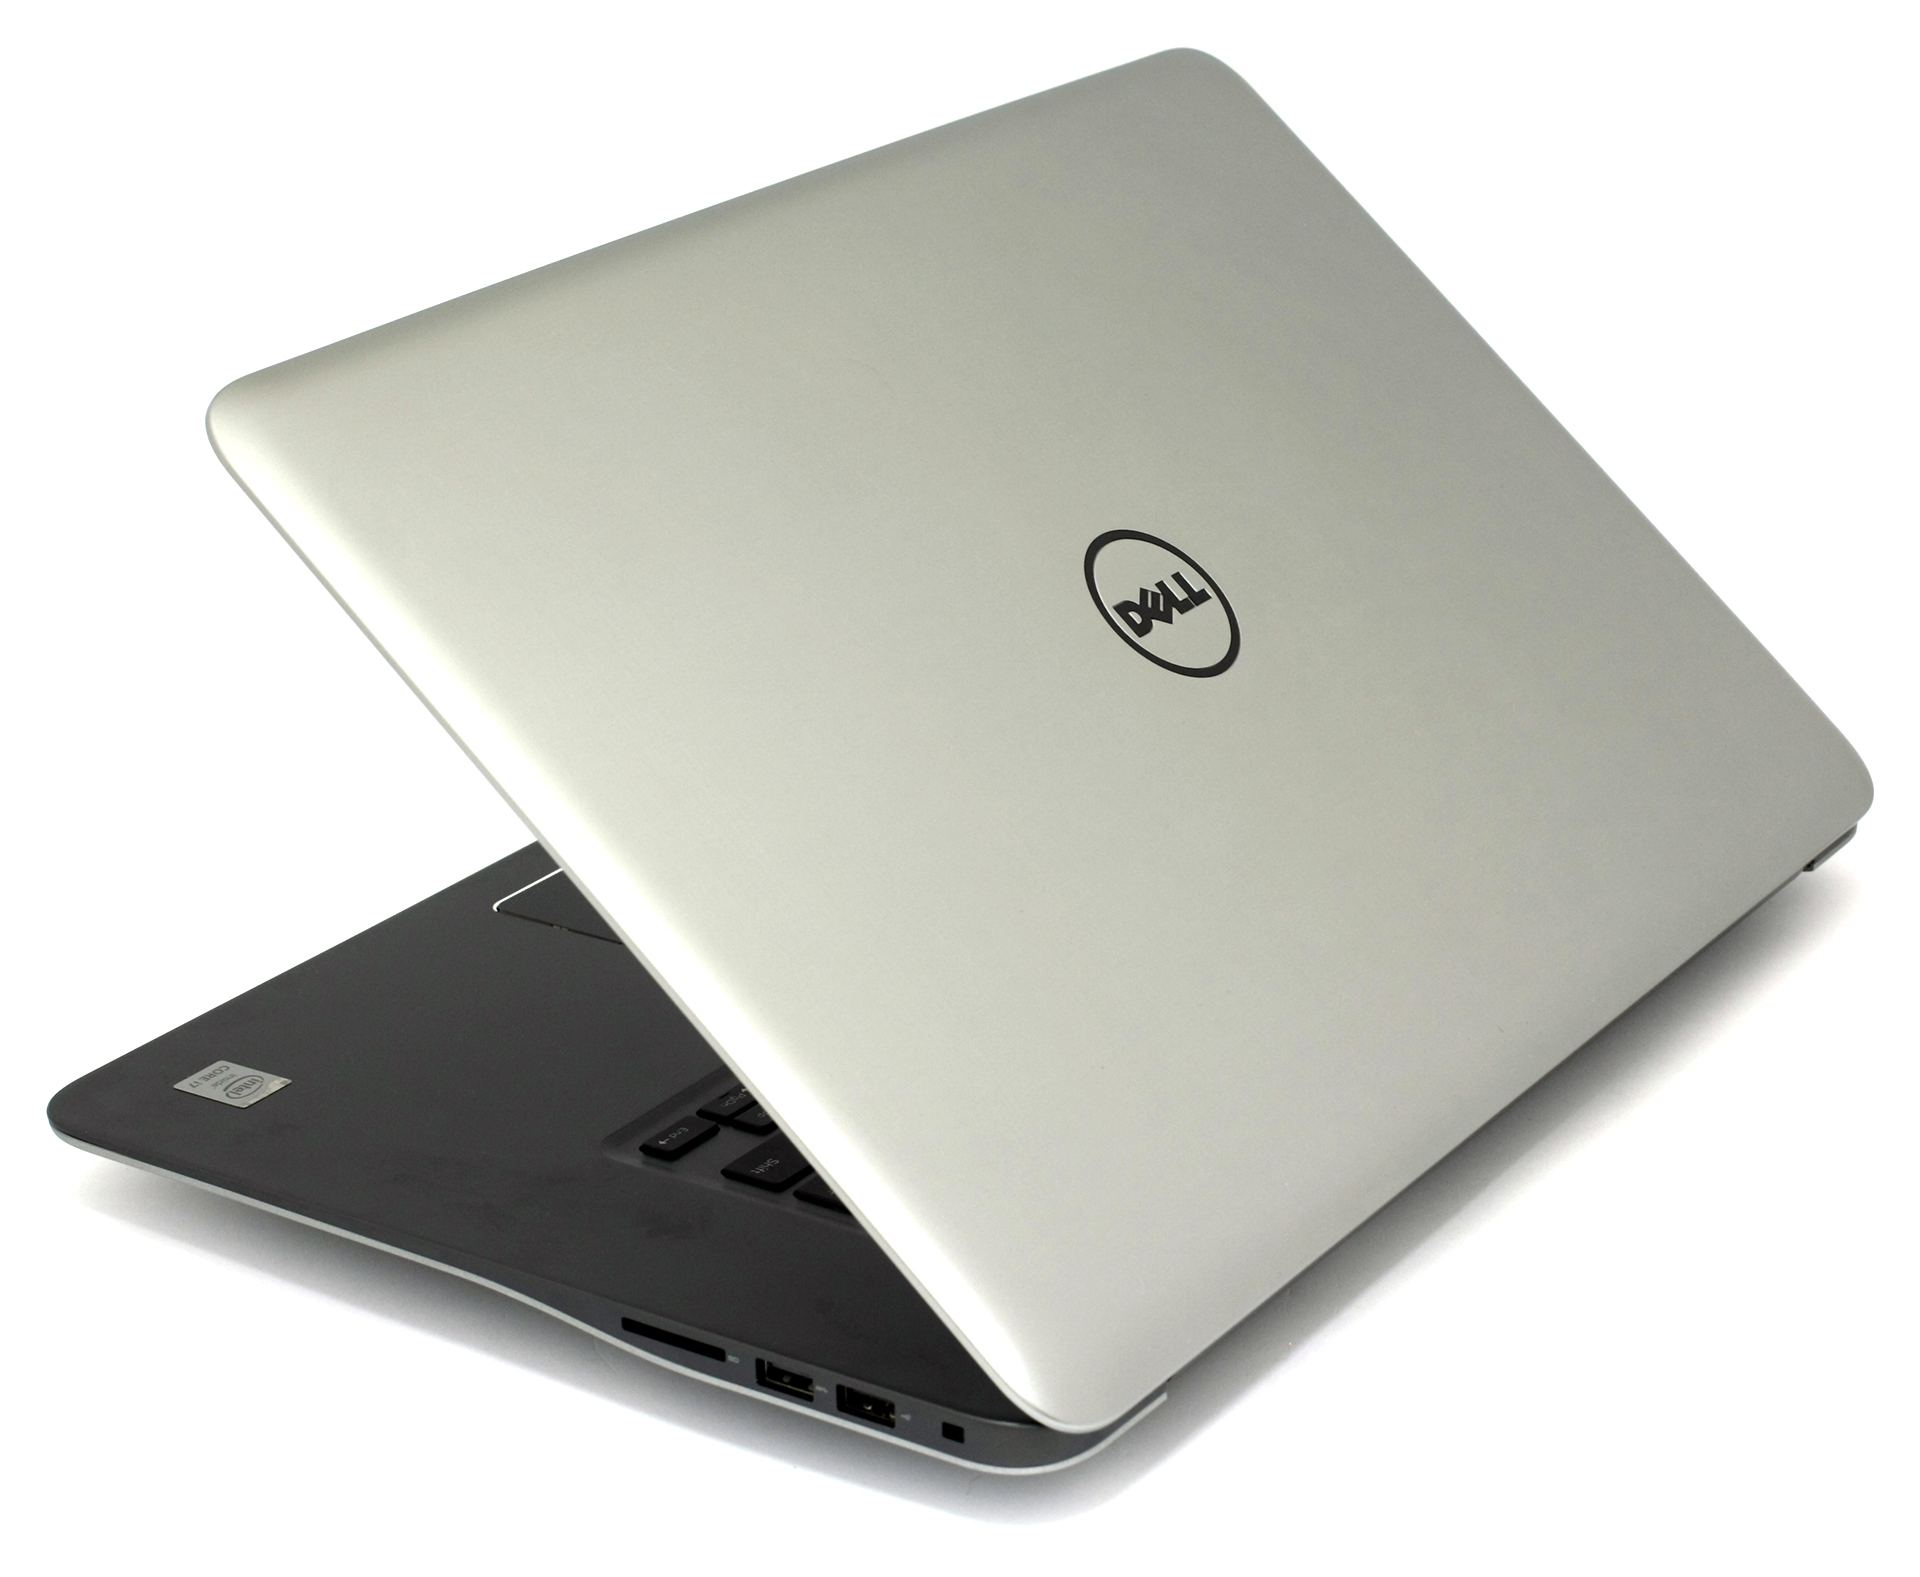 phan-biet-cac-dong-laptop-dell-1